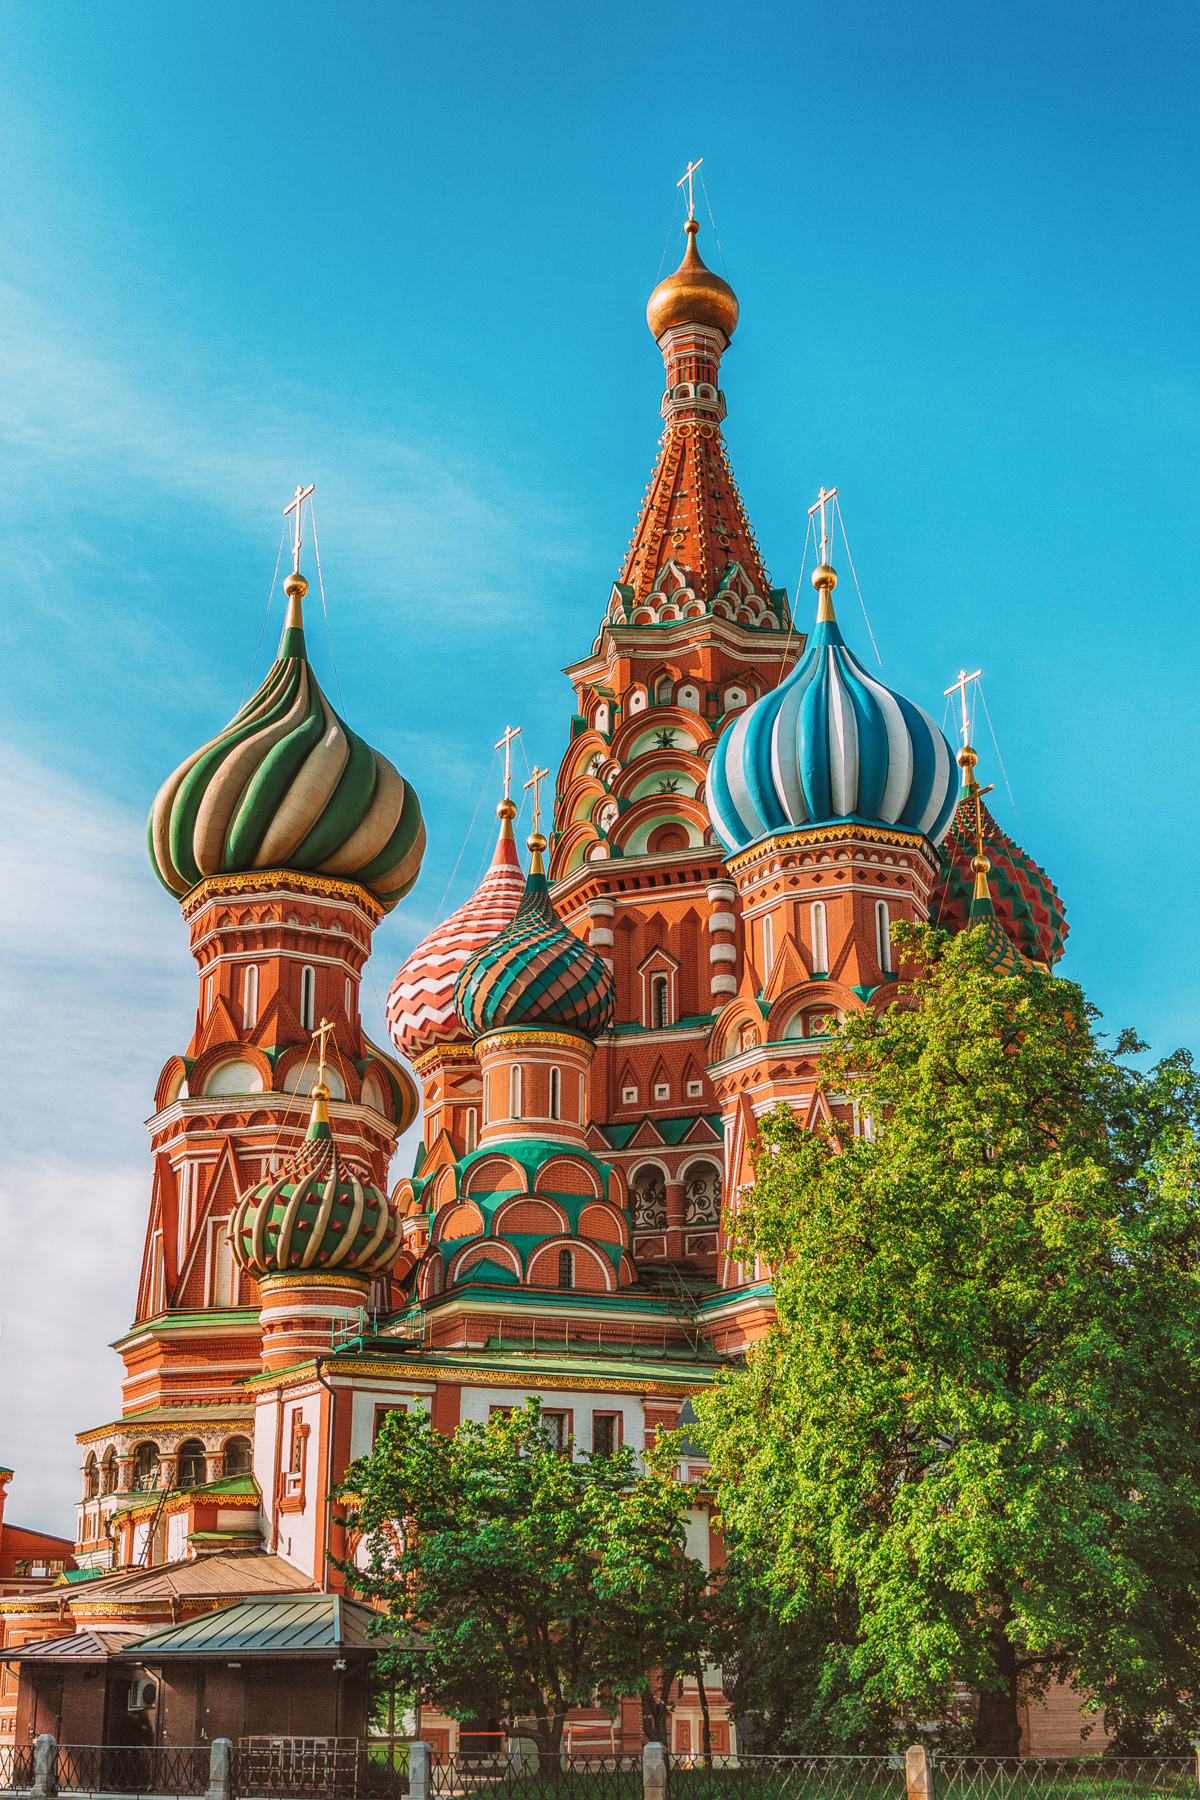 thestylejungle-Russia-Moscow-Kremlin-St-Basils-Cathedral-travel-blog